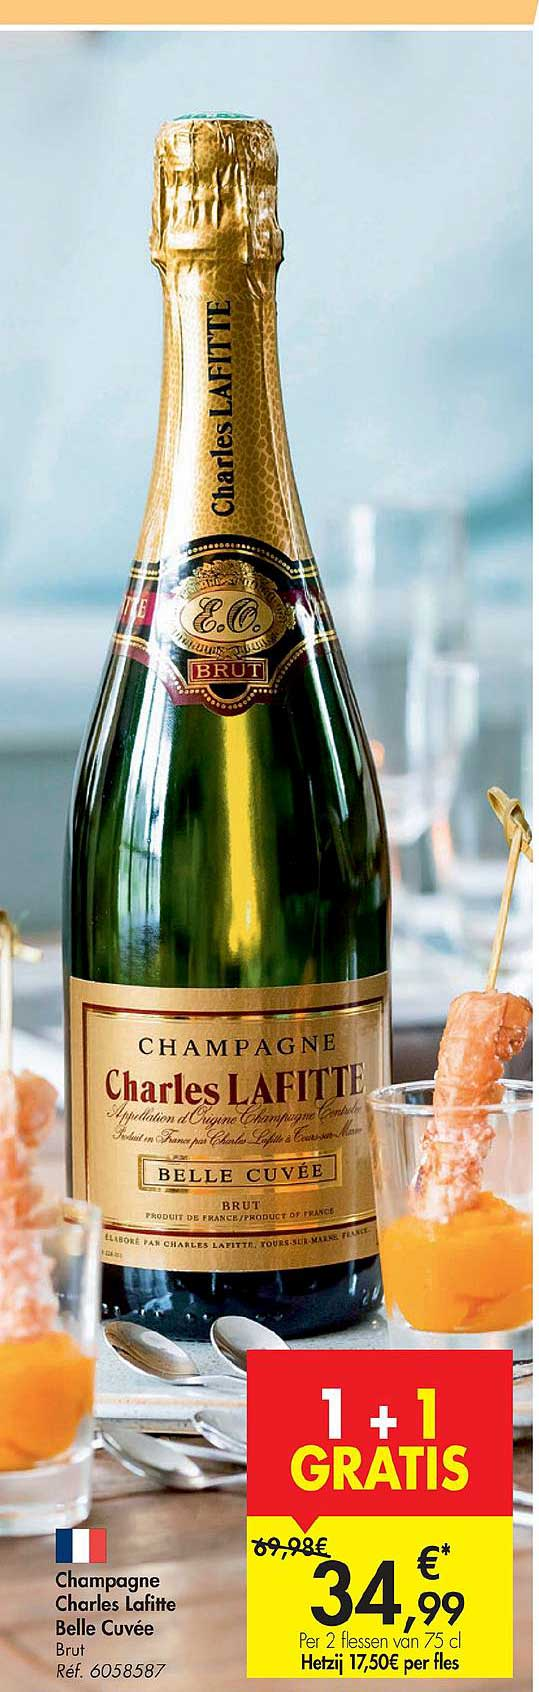 Carrefour Champagne Charles Lafitte Belle Cuvee